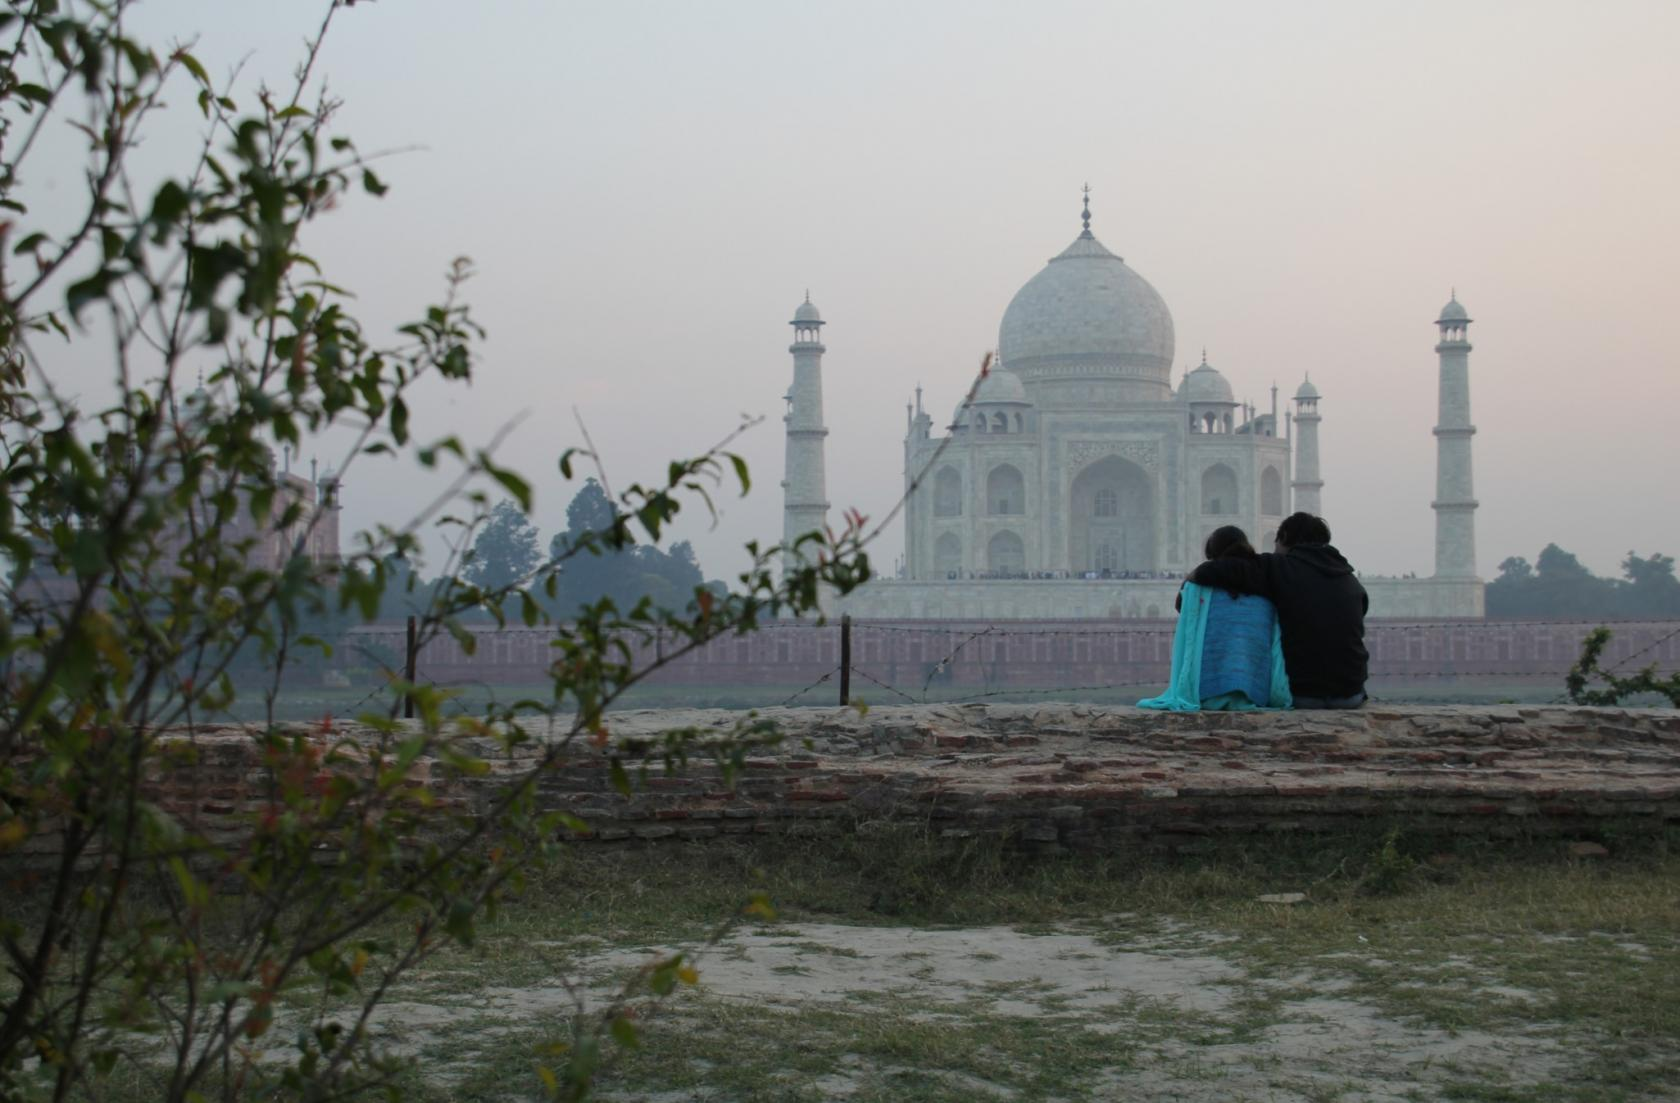 seeing the taj mahal at sunrise and sunset out baggage